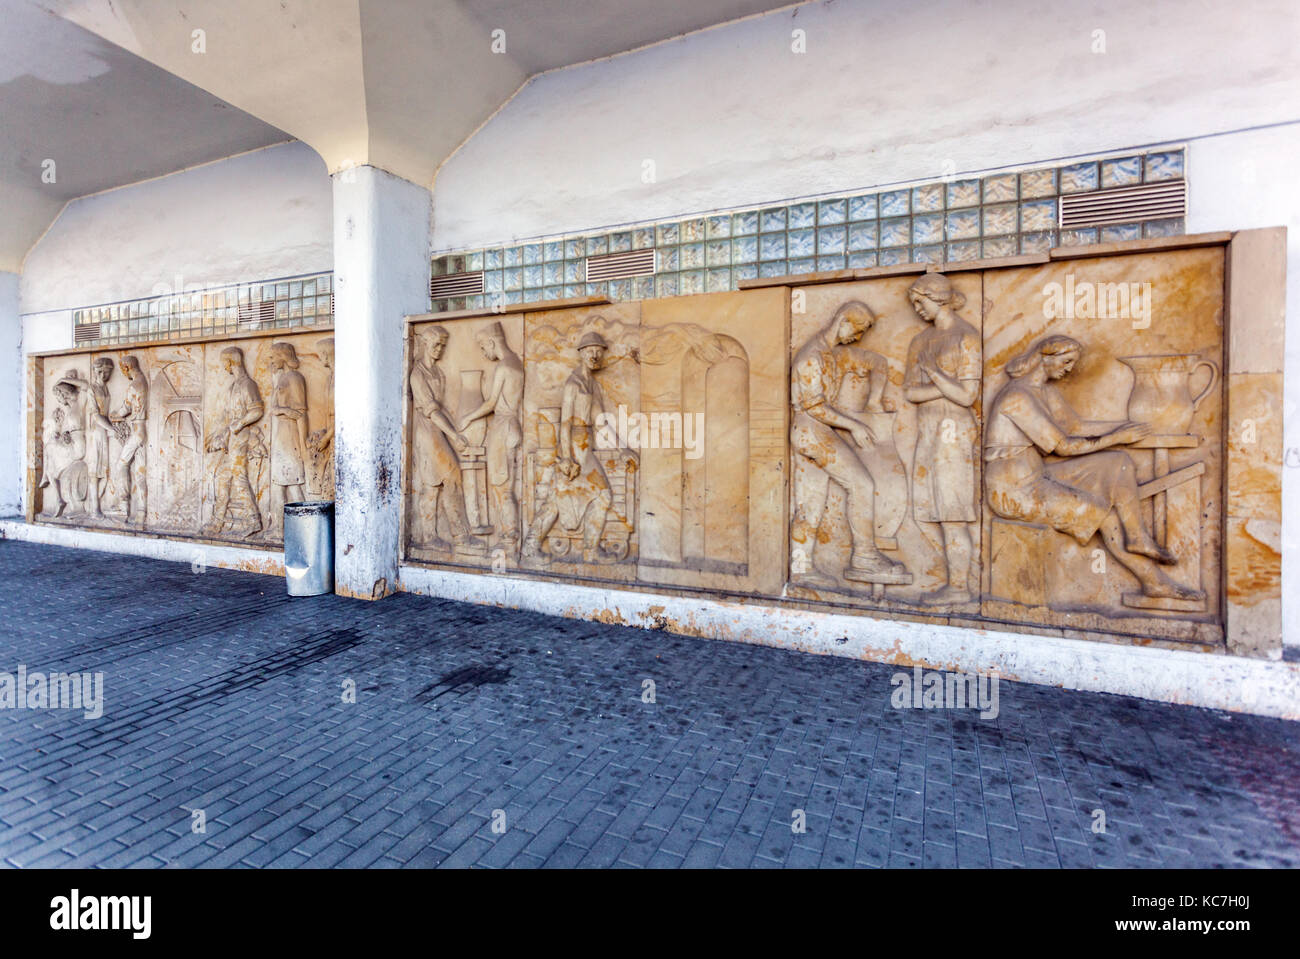 Sculpture from the period of communism, style - socialist realism, Znojmo, railway station, Czech Republic - Stock Image